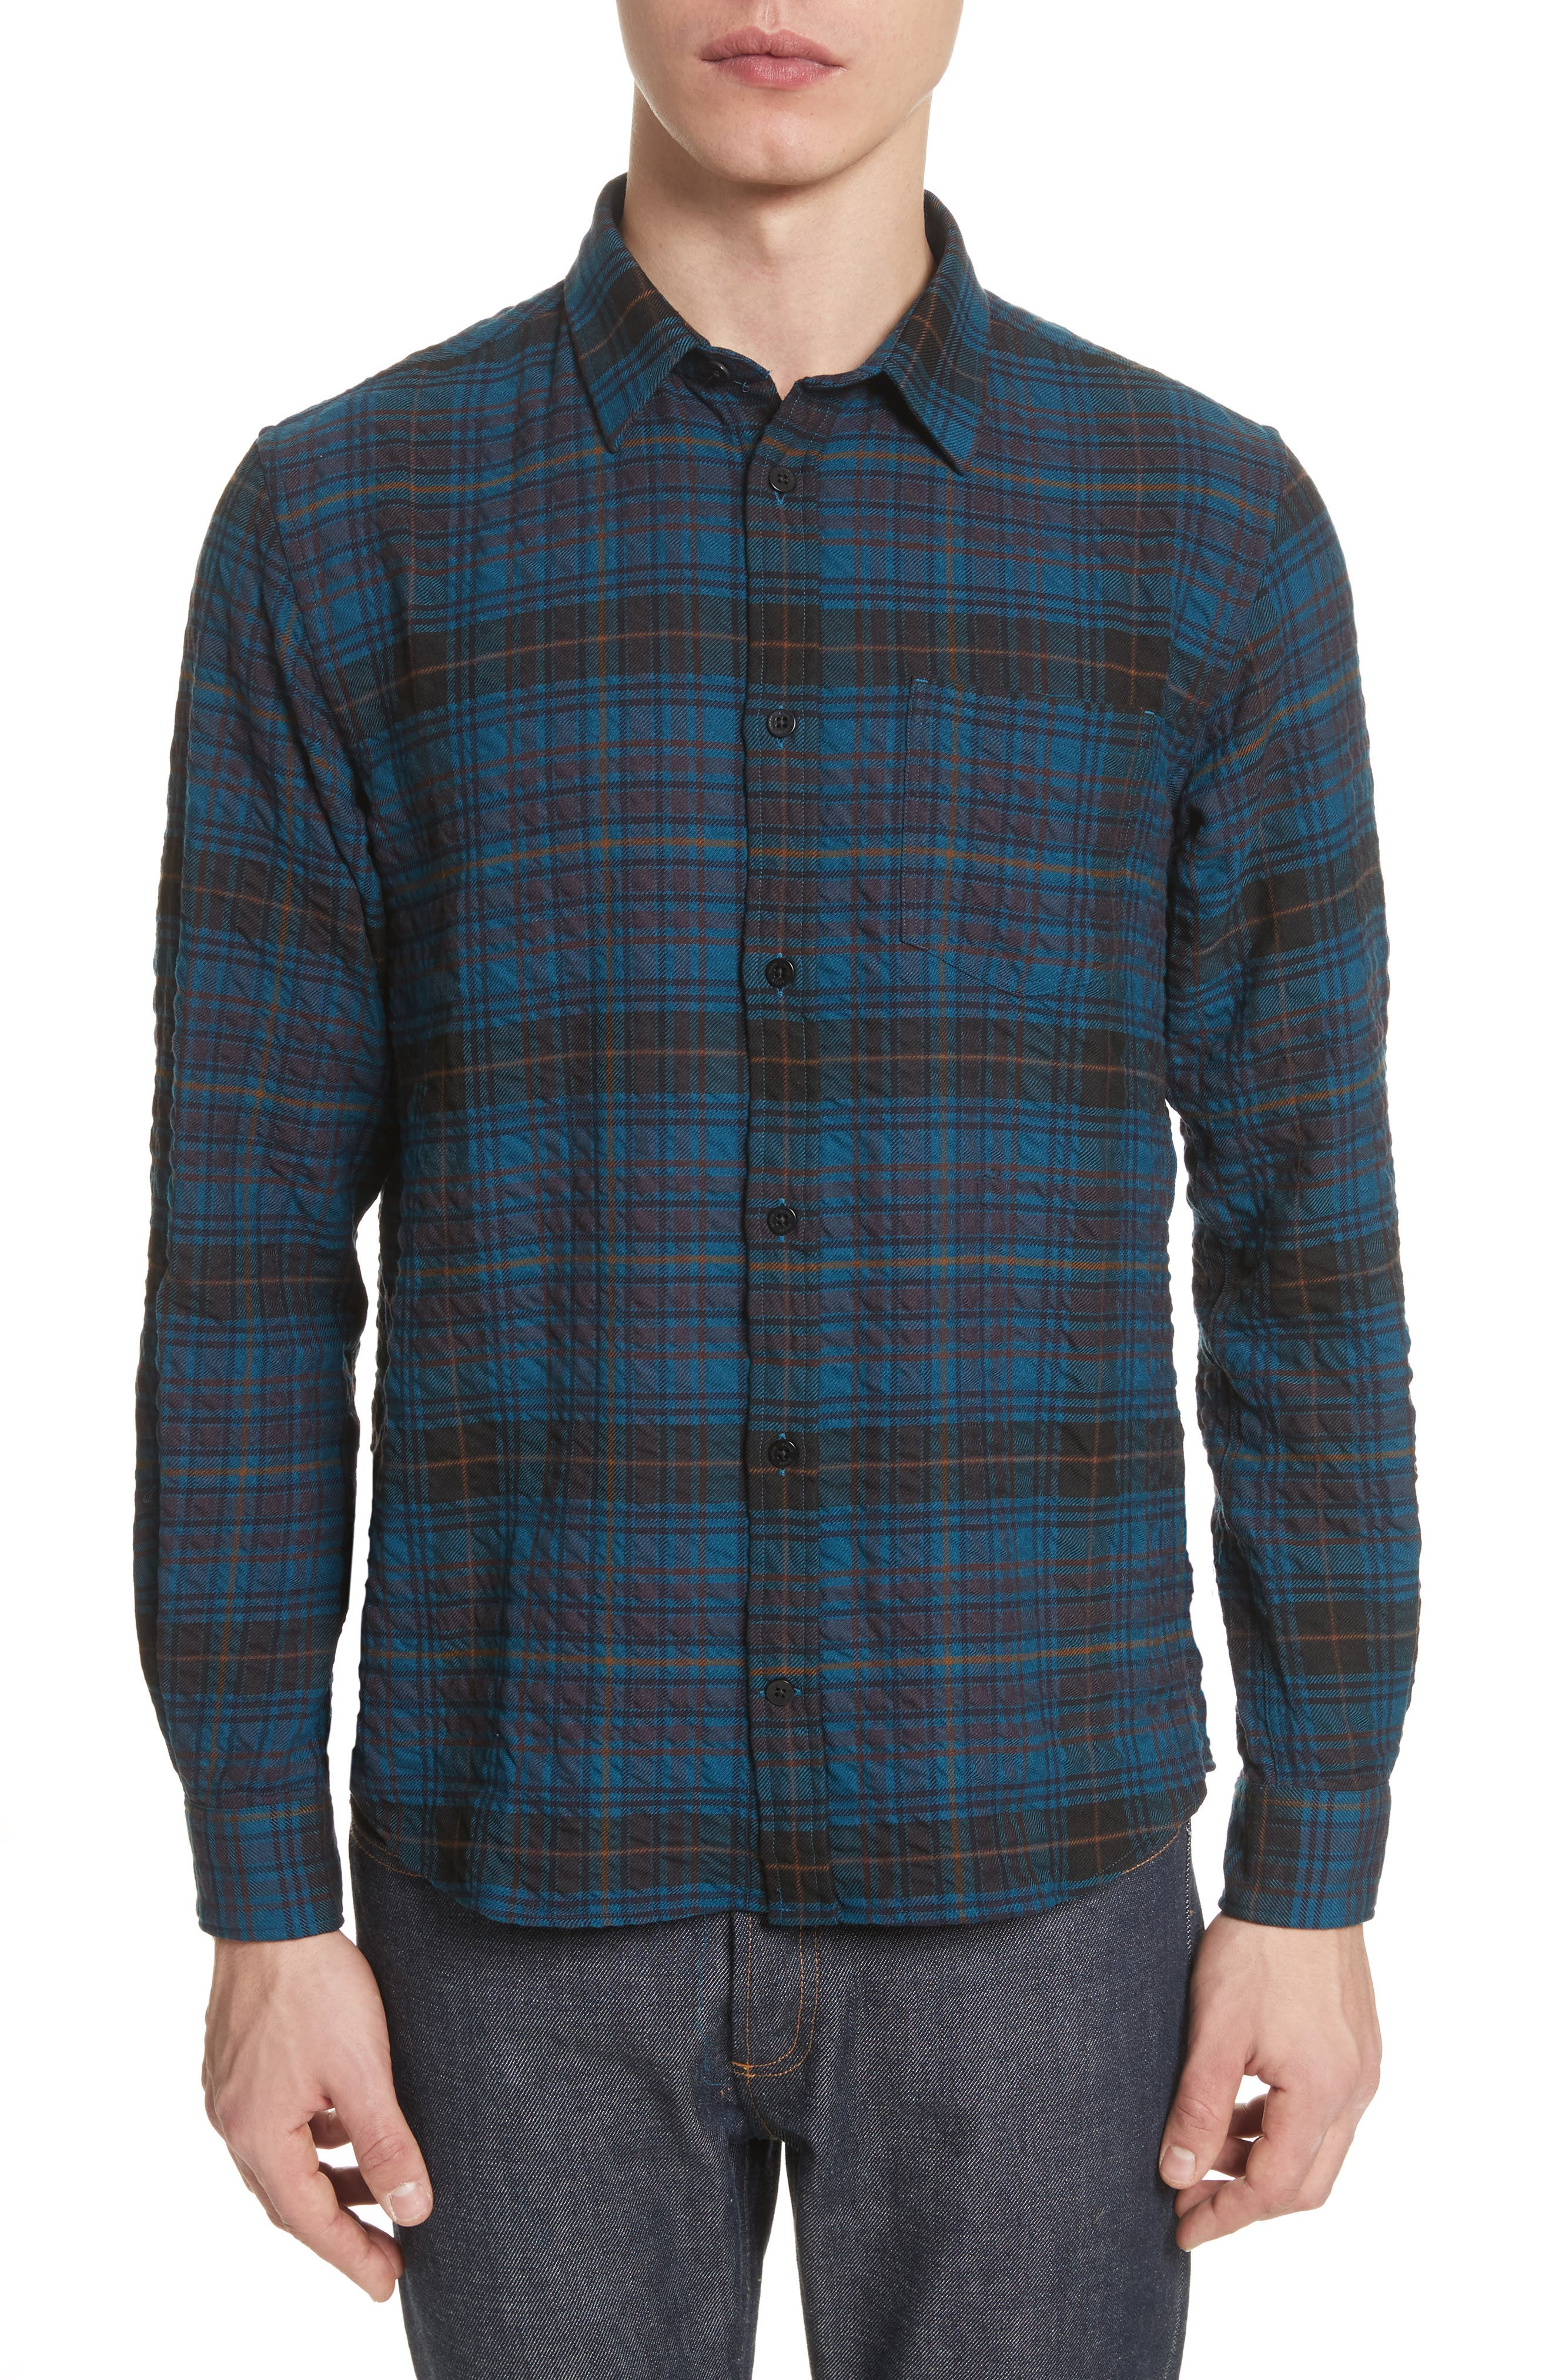 Osvald Textured Check Flannel Shirt,                         Main,                         color, 411